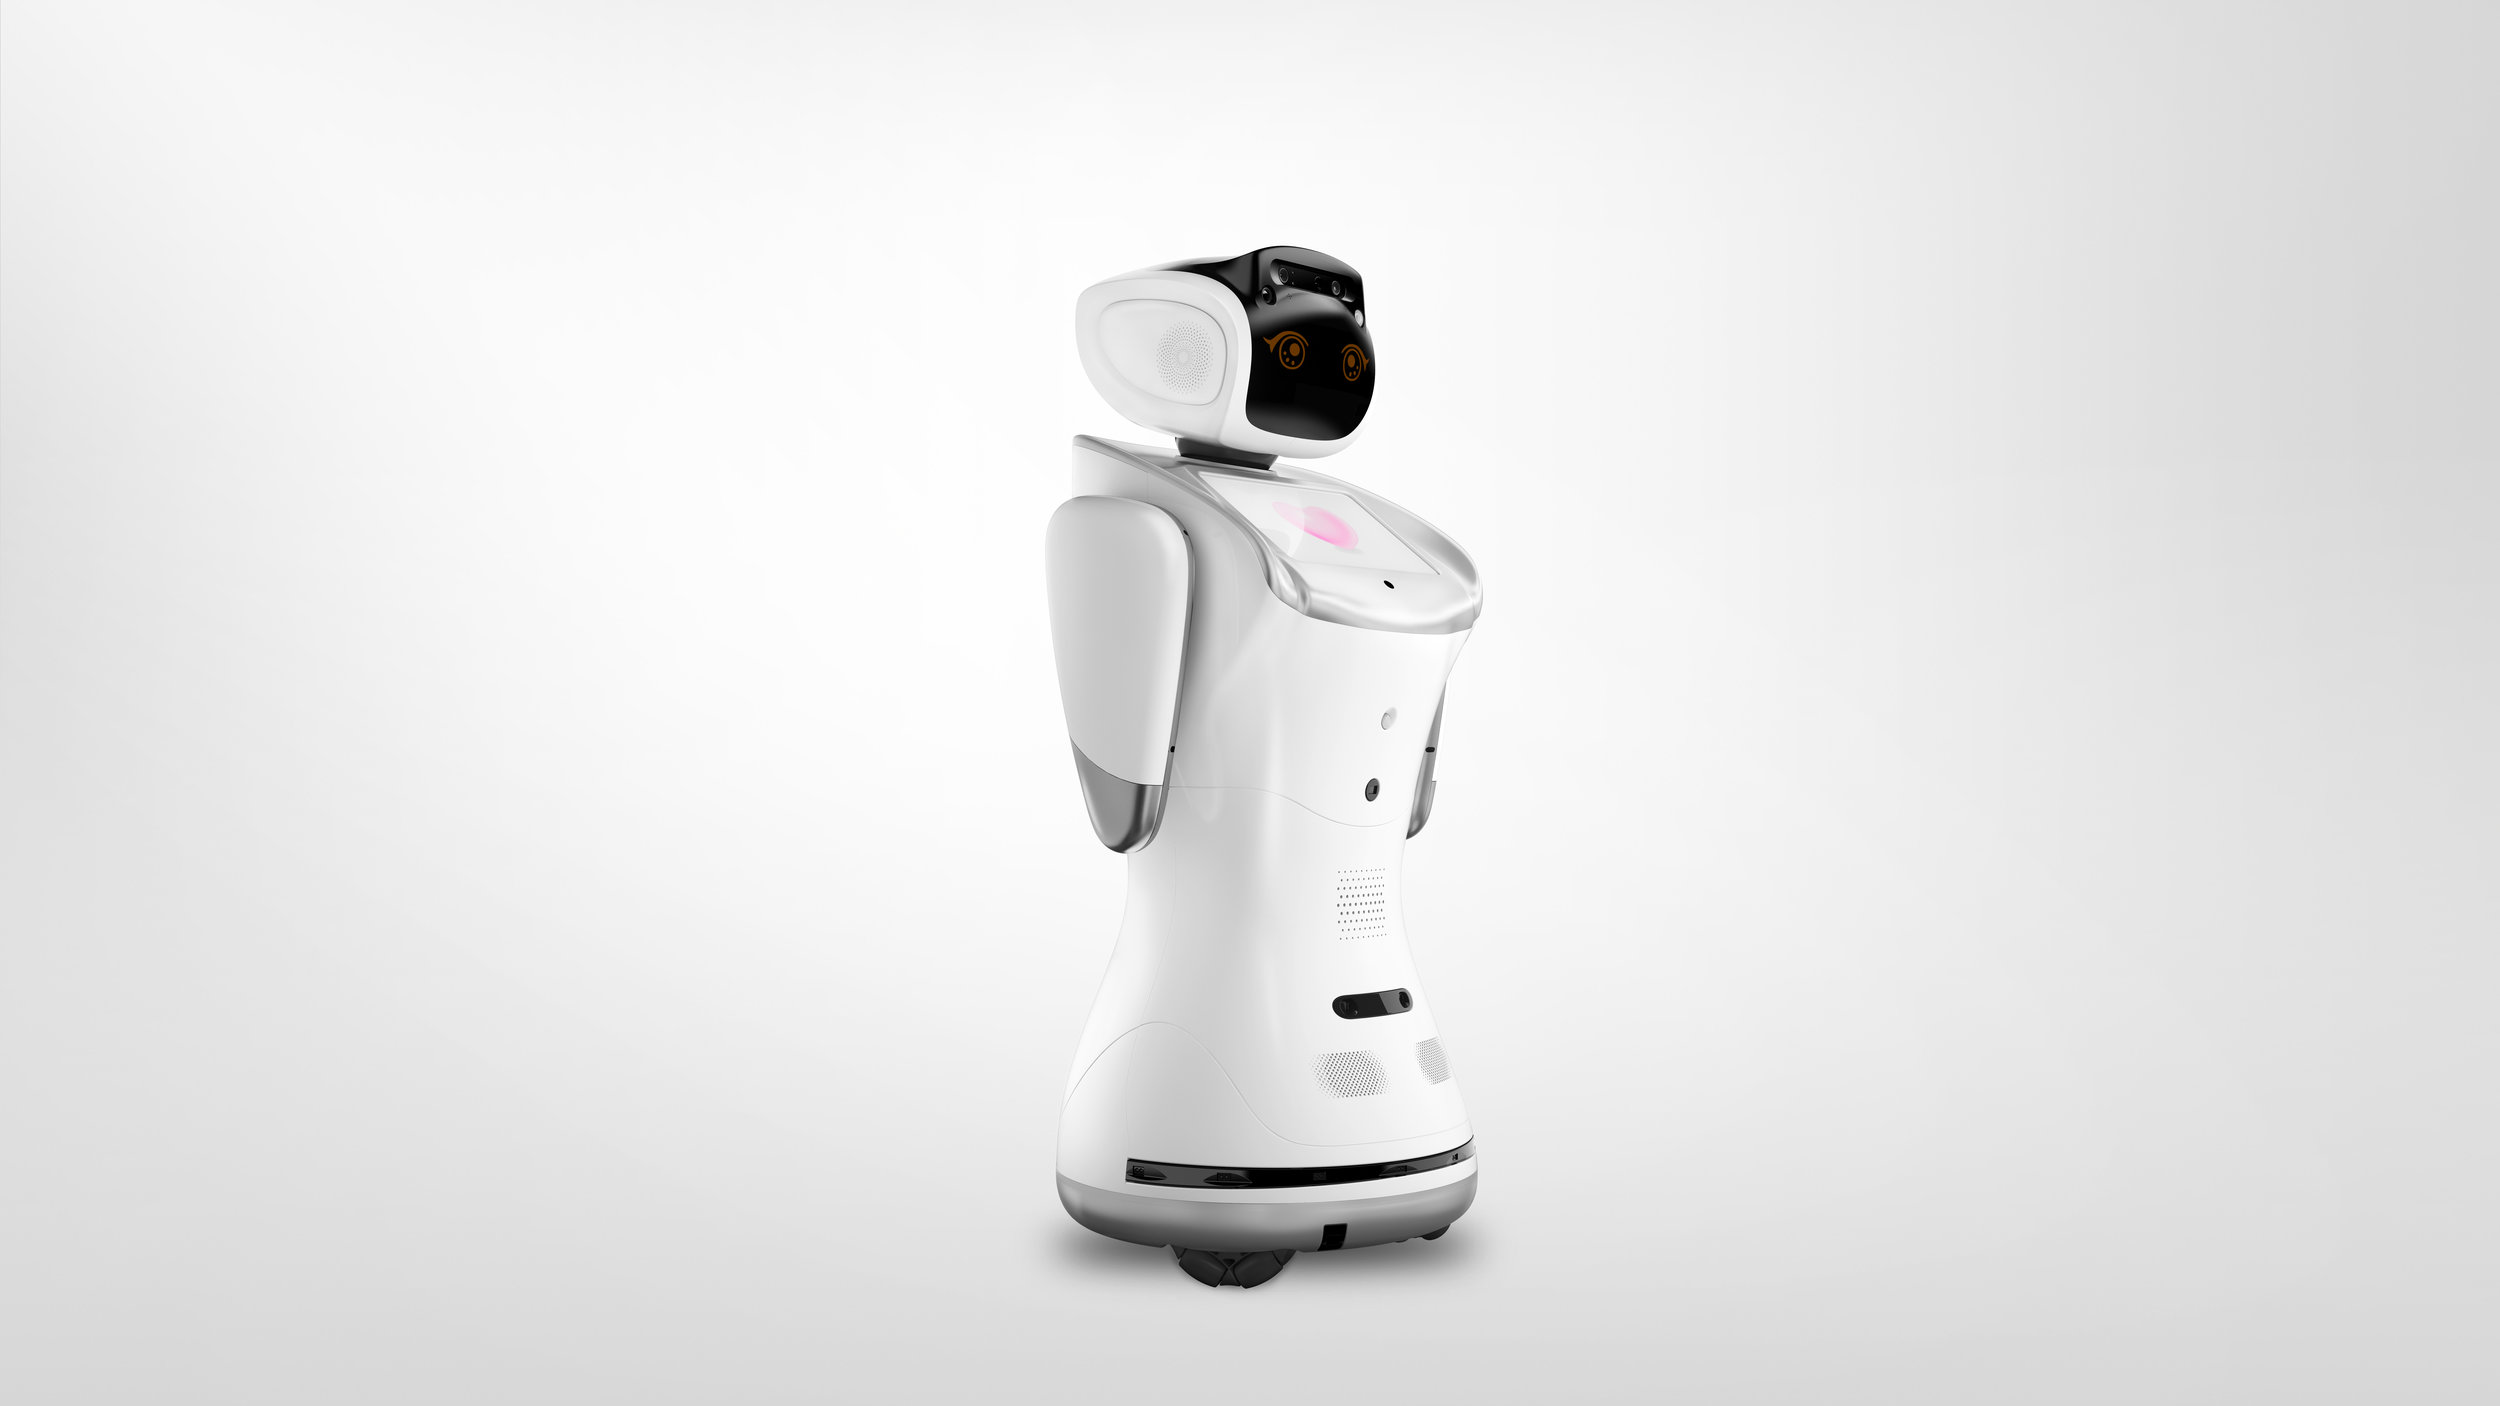 sanbot can move 360 degrees -